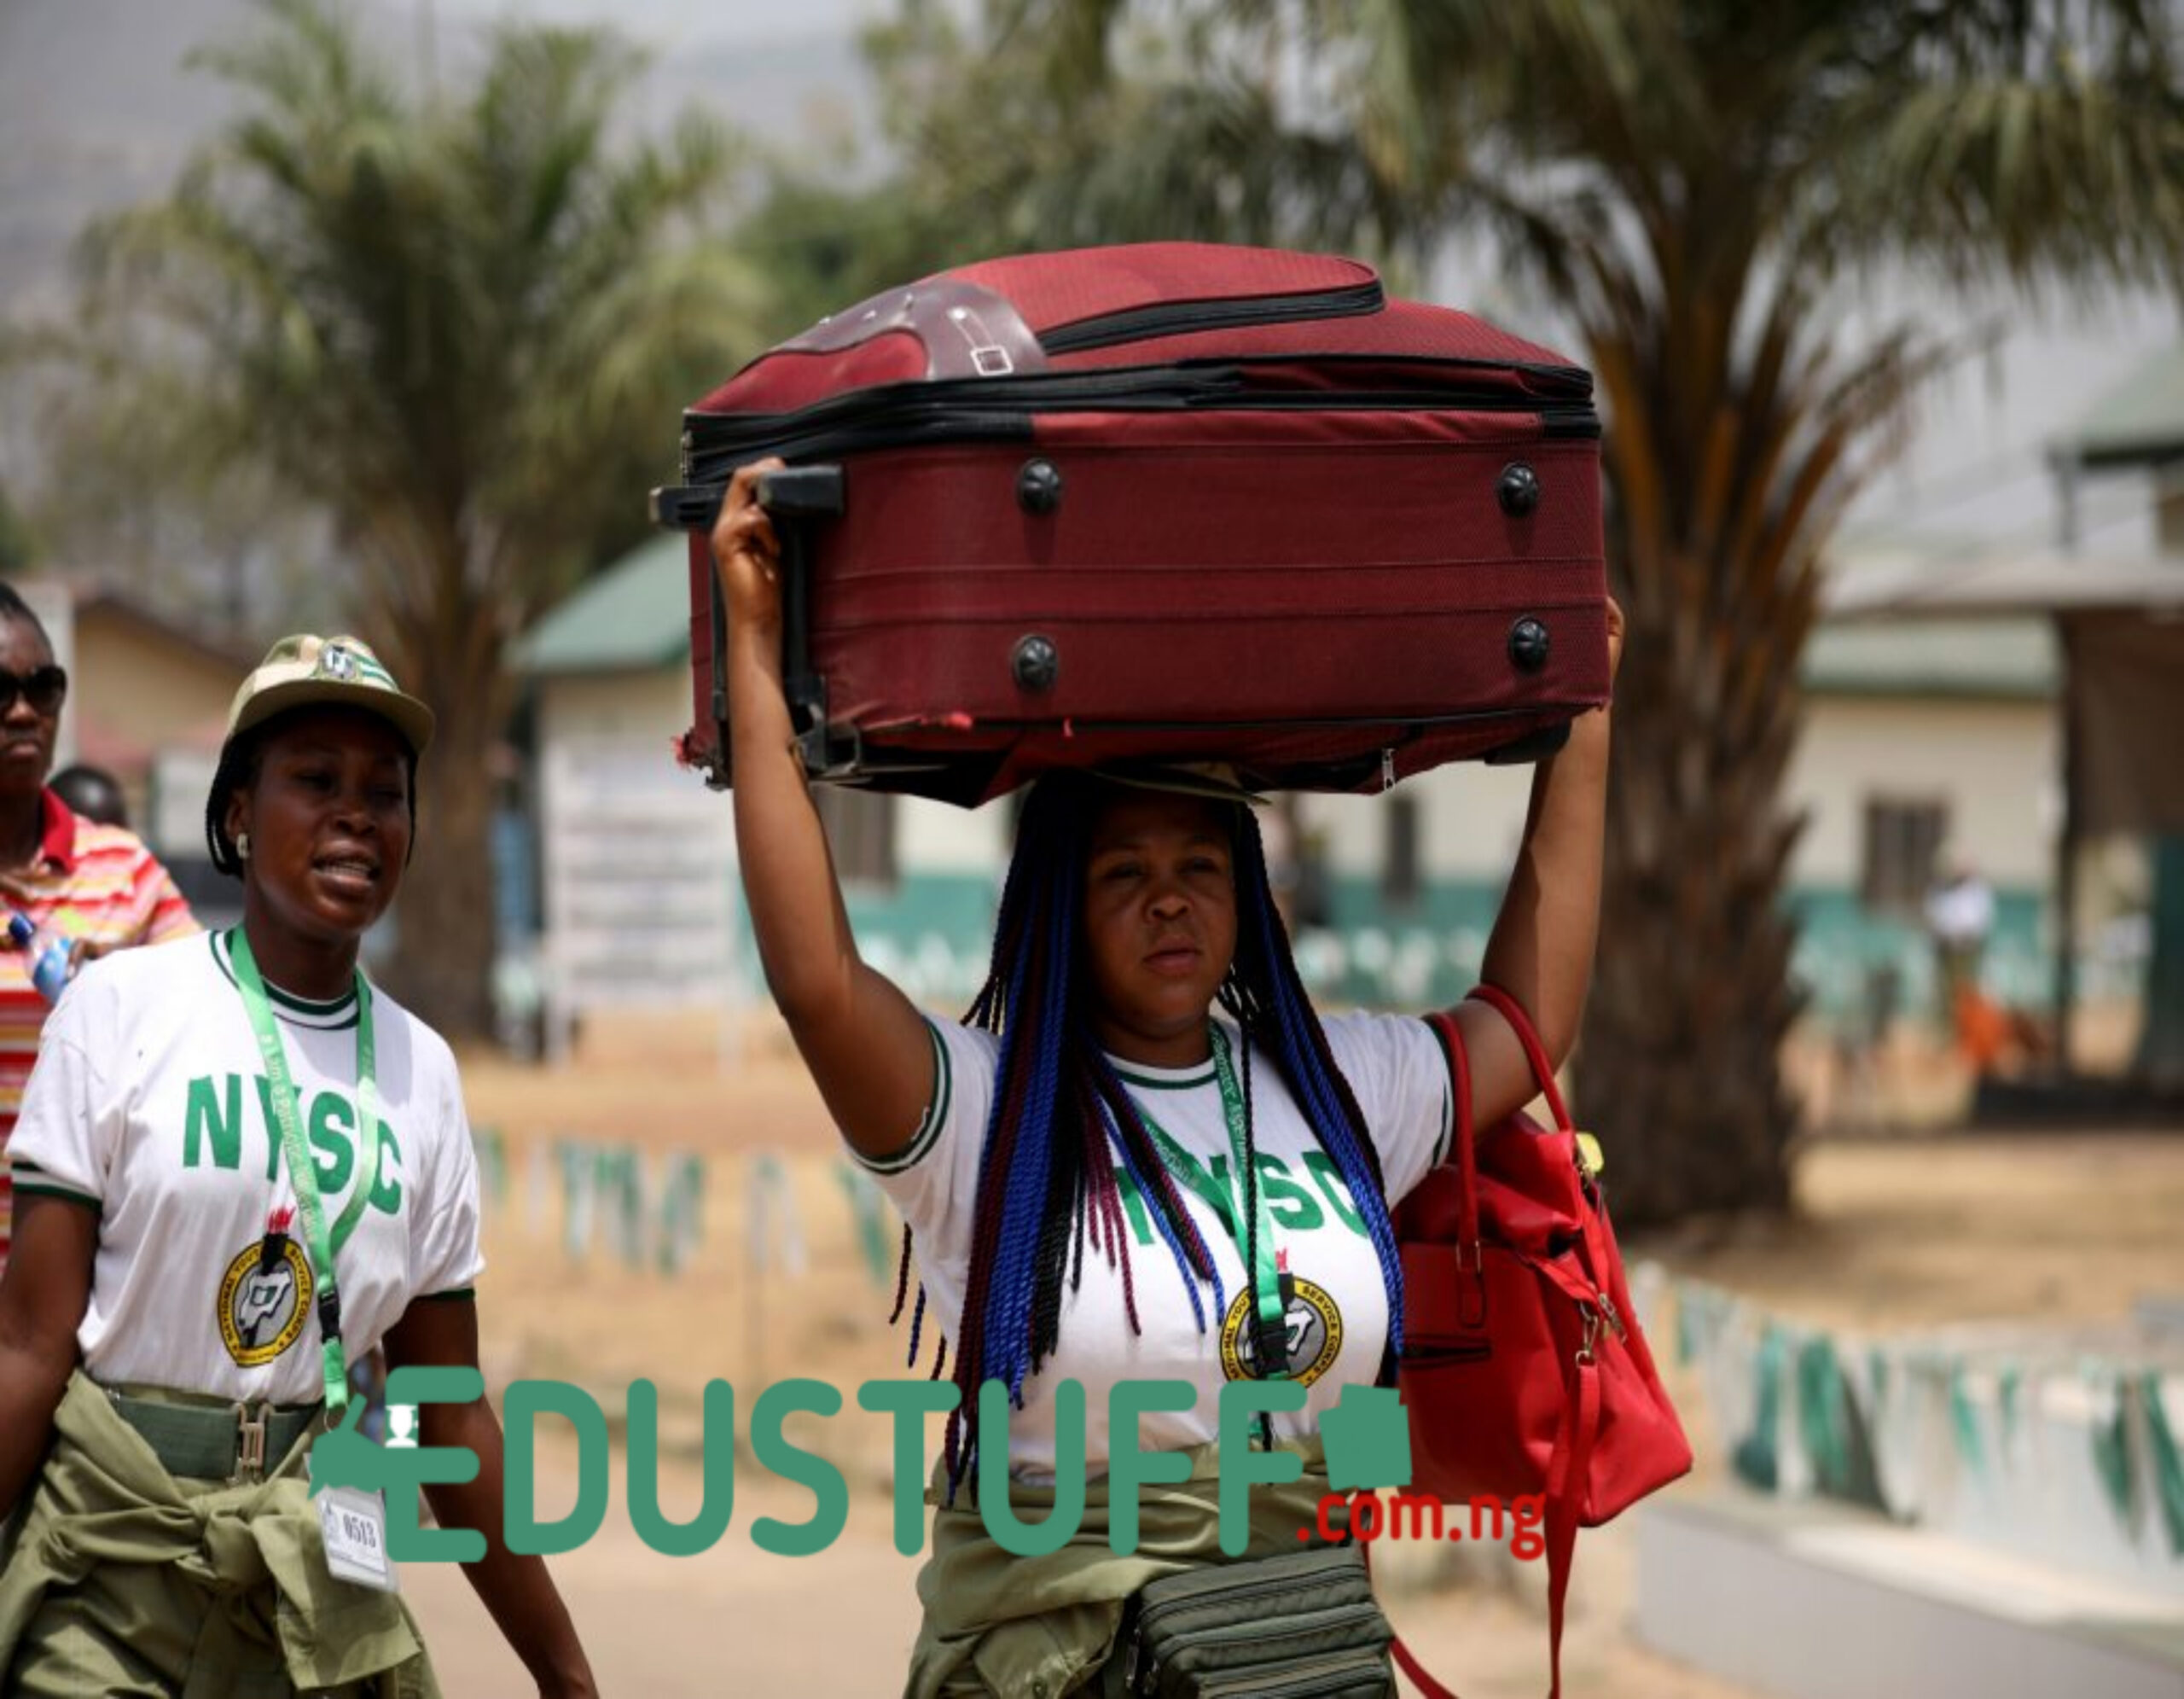 NYSC Gives Notice To Aspiring Corpse Members, Releases Deployment